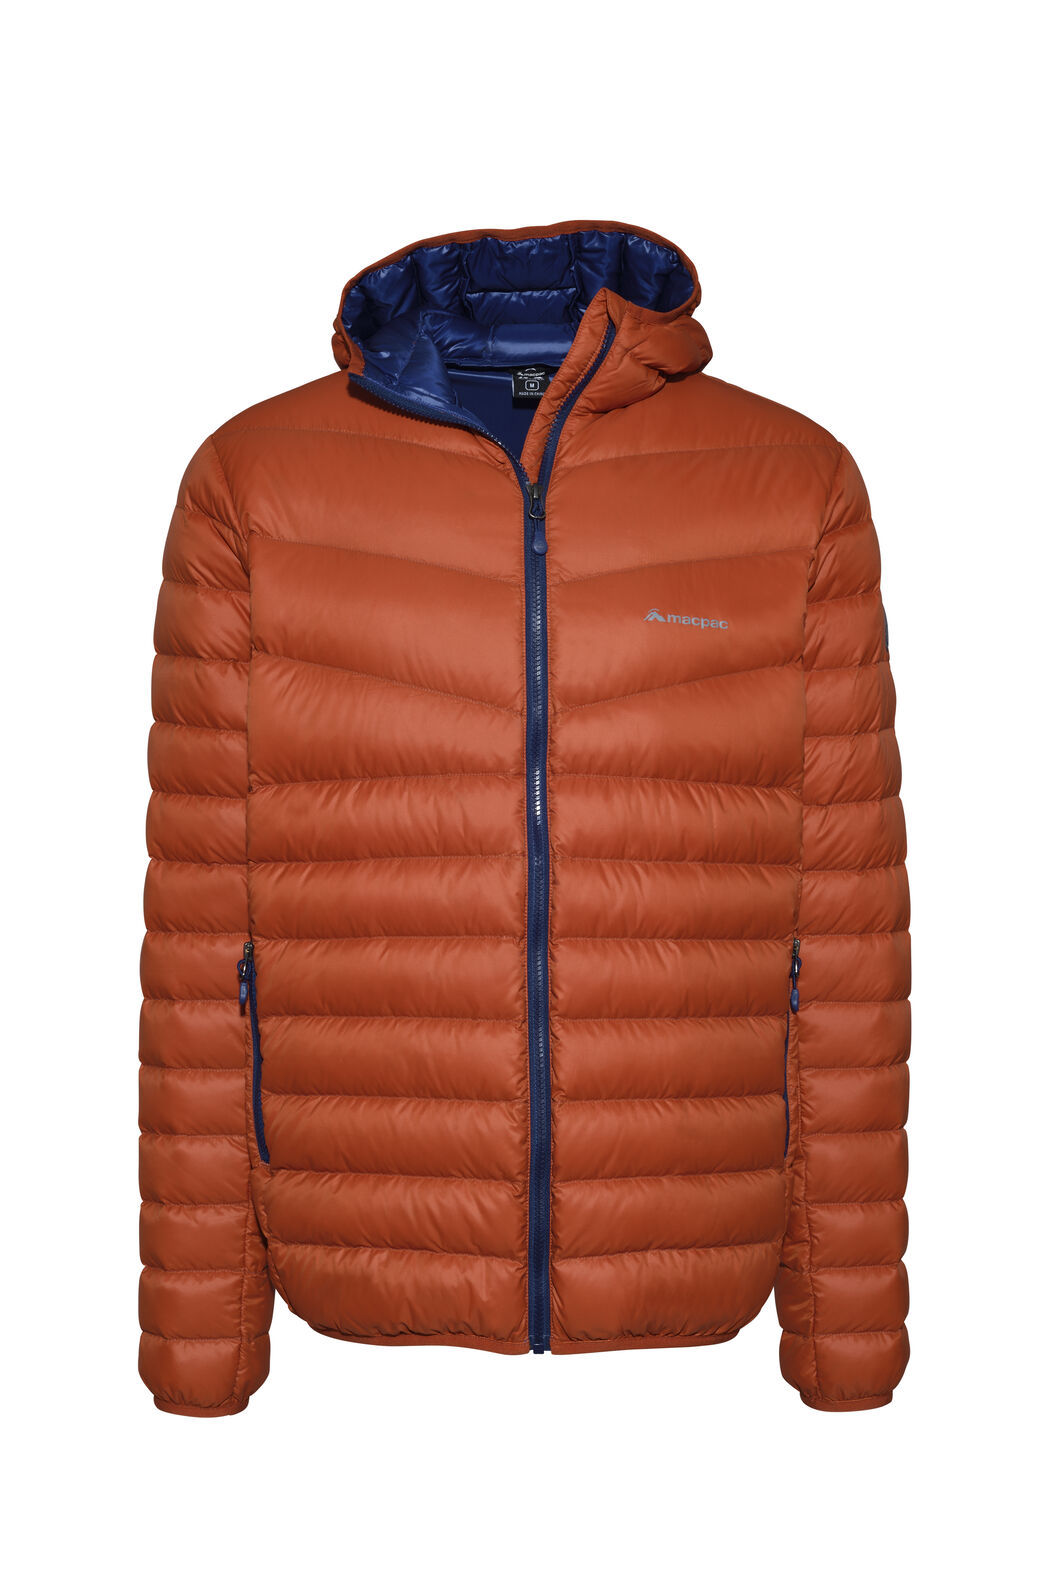 Macpac Mercury Hooded Down Jacket — Men's, Rooibos Tea, hi-res